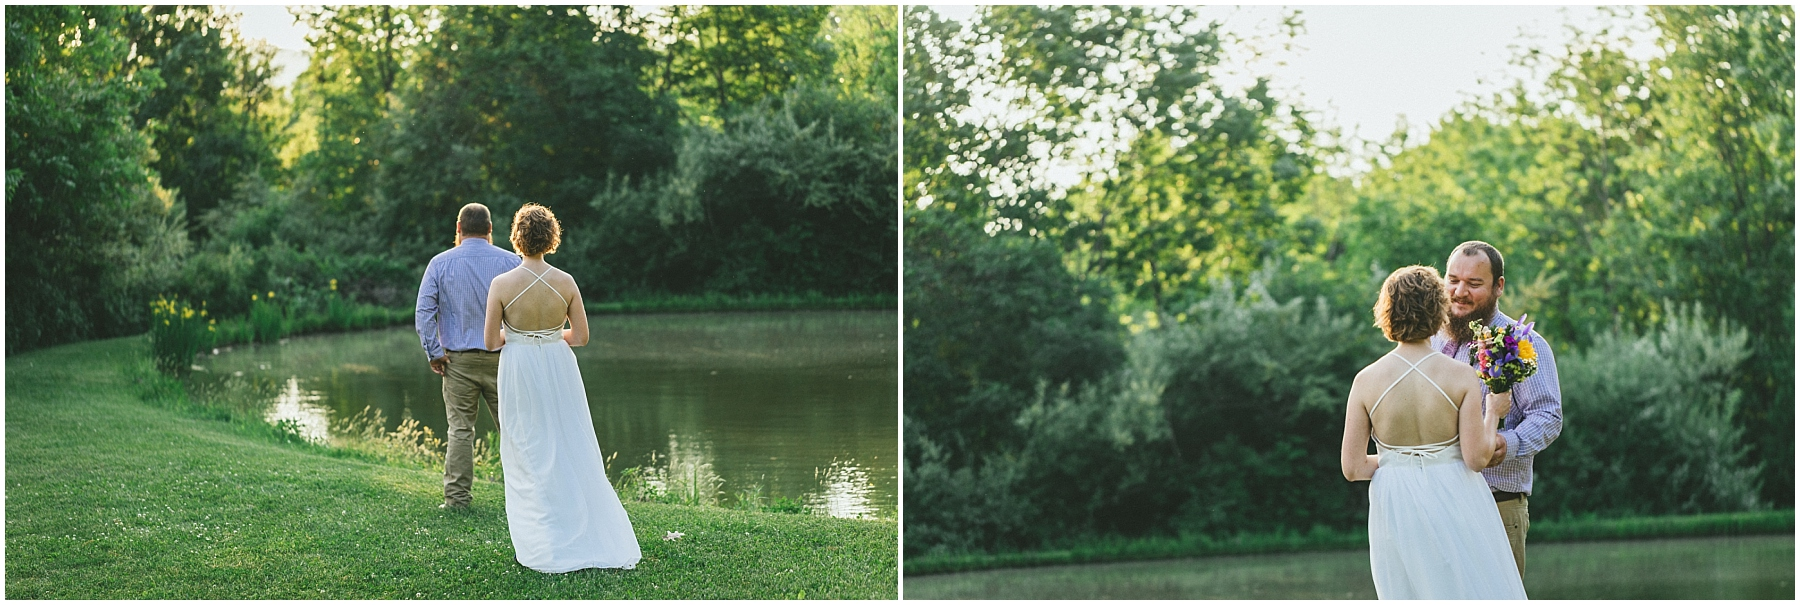 fingerlakesweddingphotography_0385.jpg